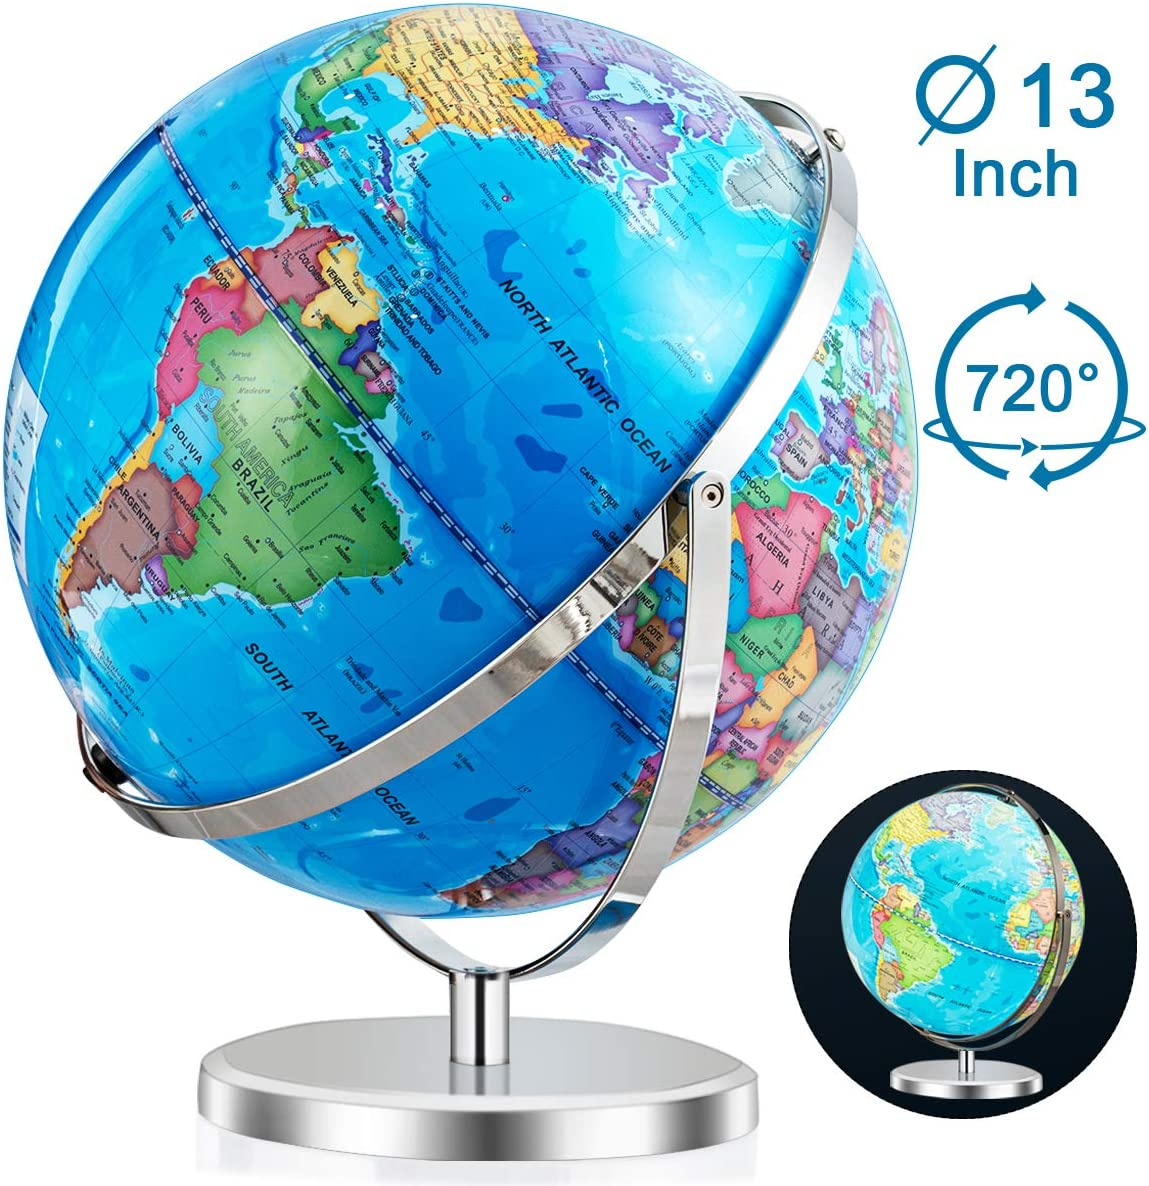 Goplus Desktop World Globe, Educational Geographic World Globe with Stand for Kids and Adults, 720° Rotation Decorative Globe, Easy to Read Labels Over 4000 Locations for Classroom, Office